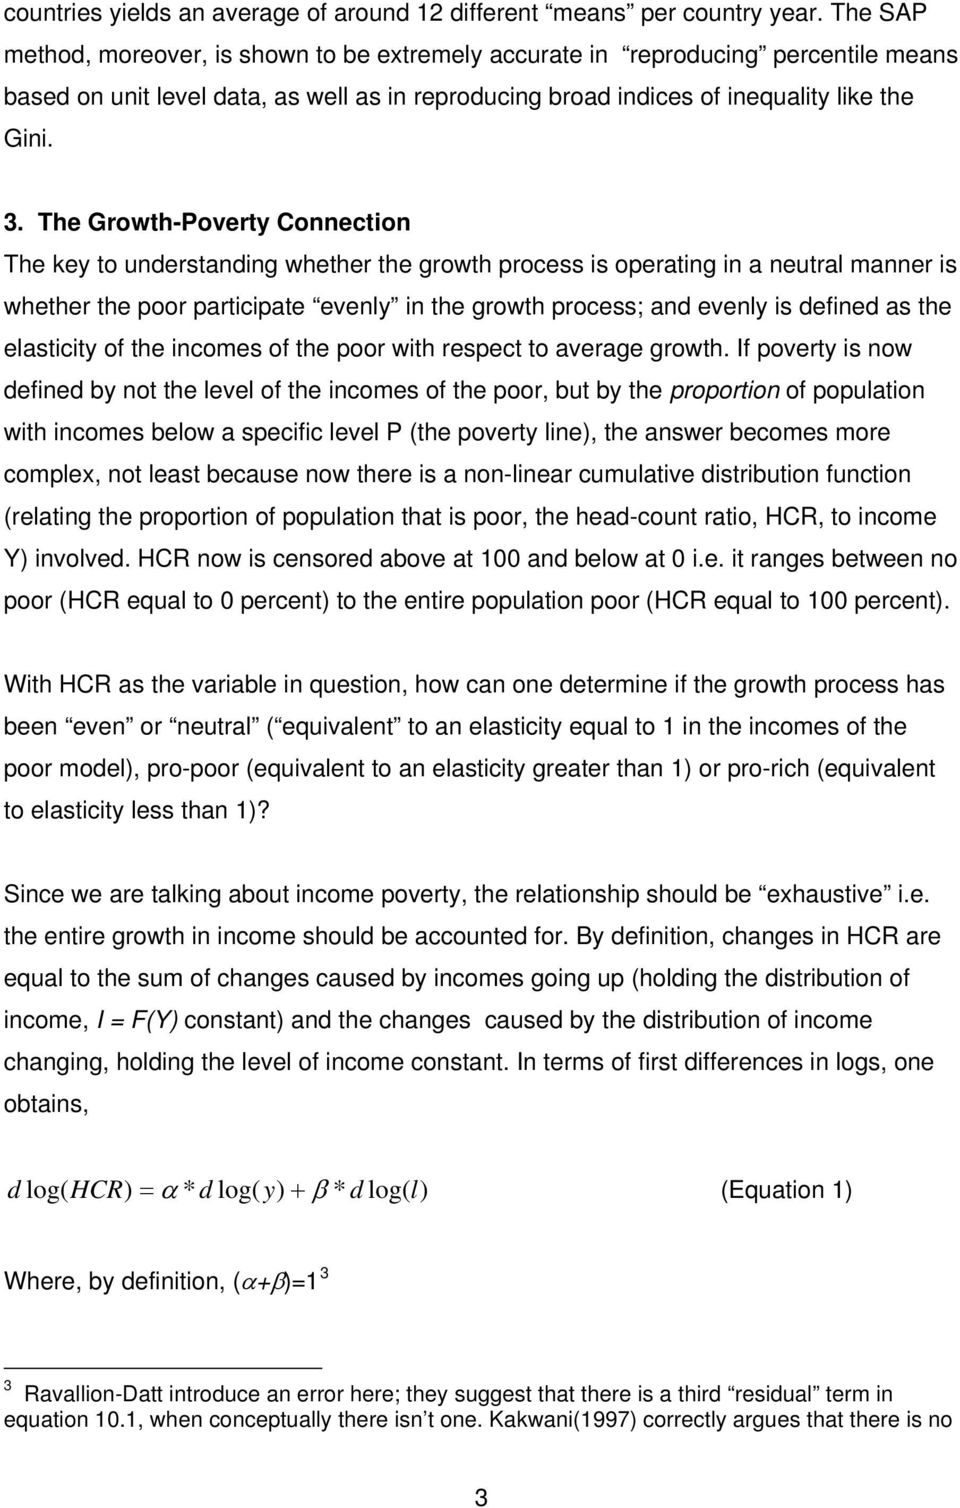 The Growth-Poverty Connection The key to understanding whether the growth process is operating in a neutral manner is whether the poor participate evenly in the growth process; and evenly is defined